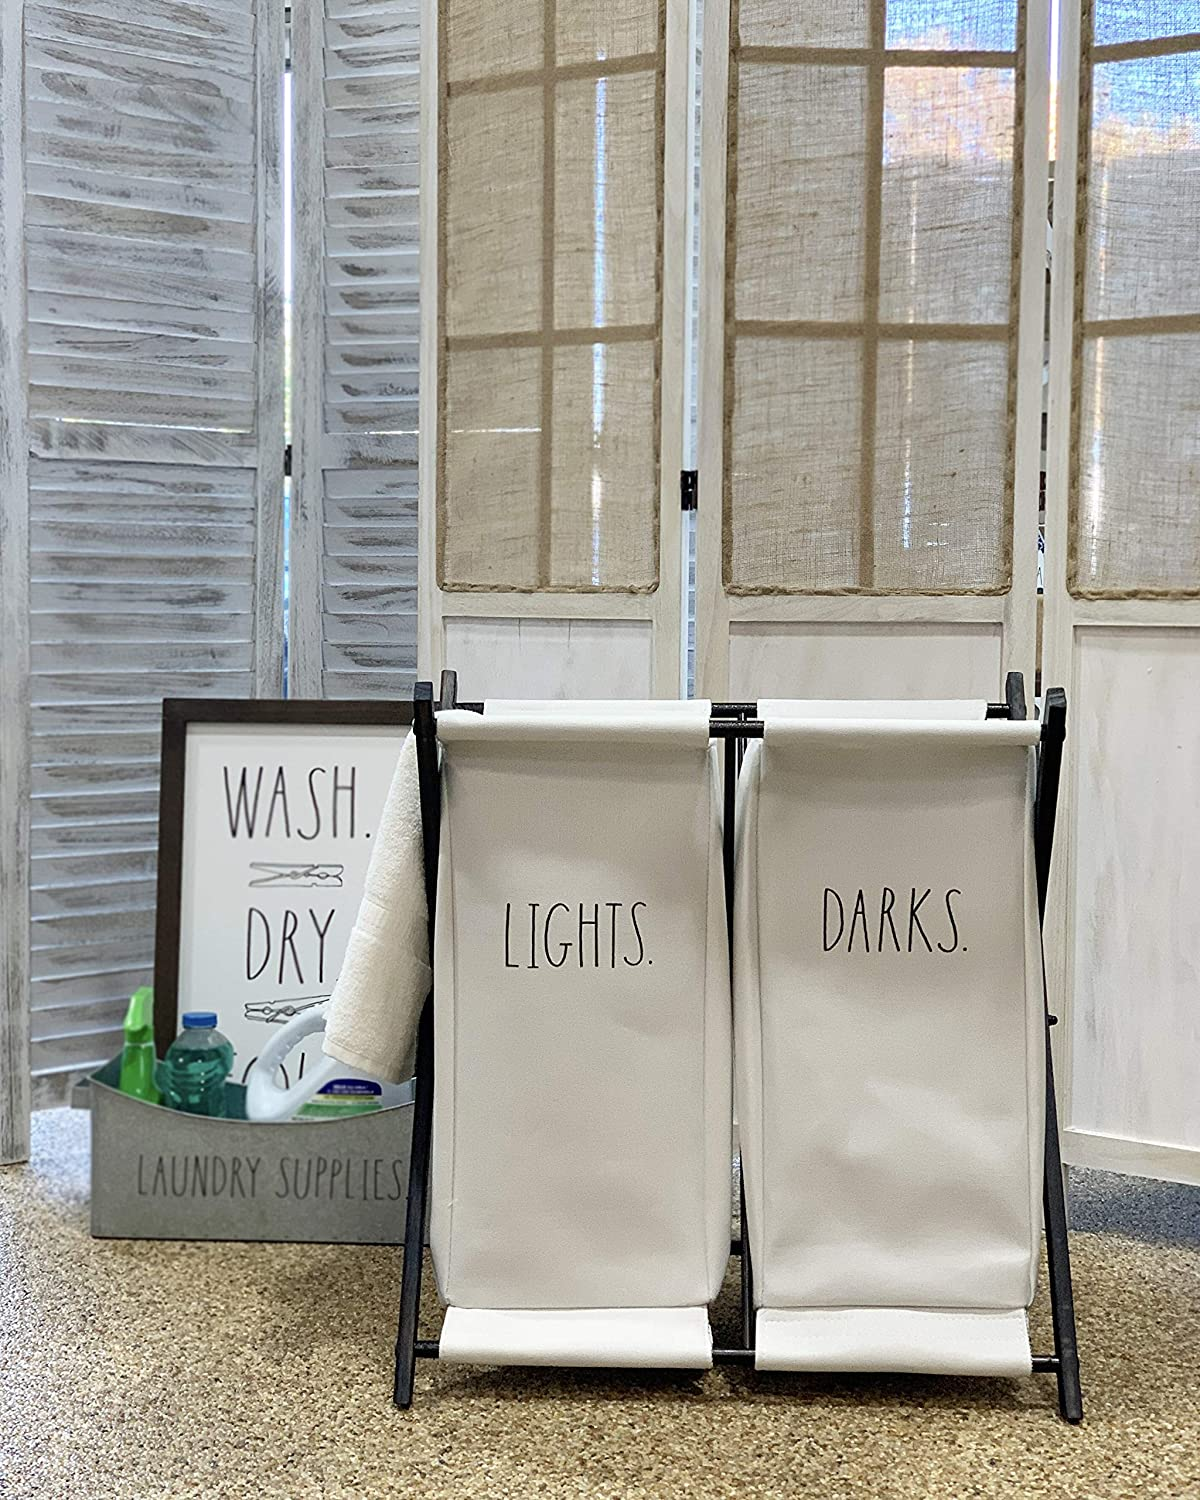 Bathroom Two Section Clothes Bin for Easy Divide of Lights and Darks Rae Dunn Folding Laundry Hamper Foldable Basket for Bedroom Nursery Metal and Black Fabric Home D/écor Dorm